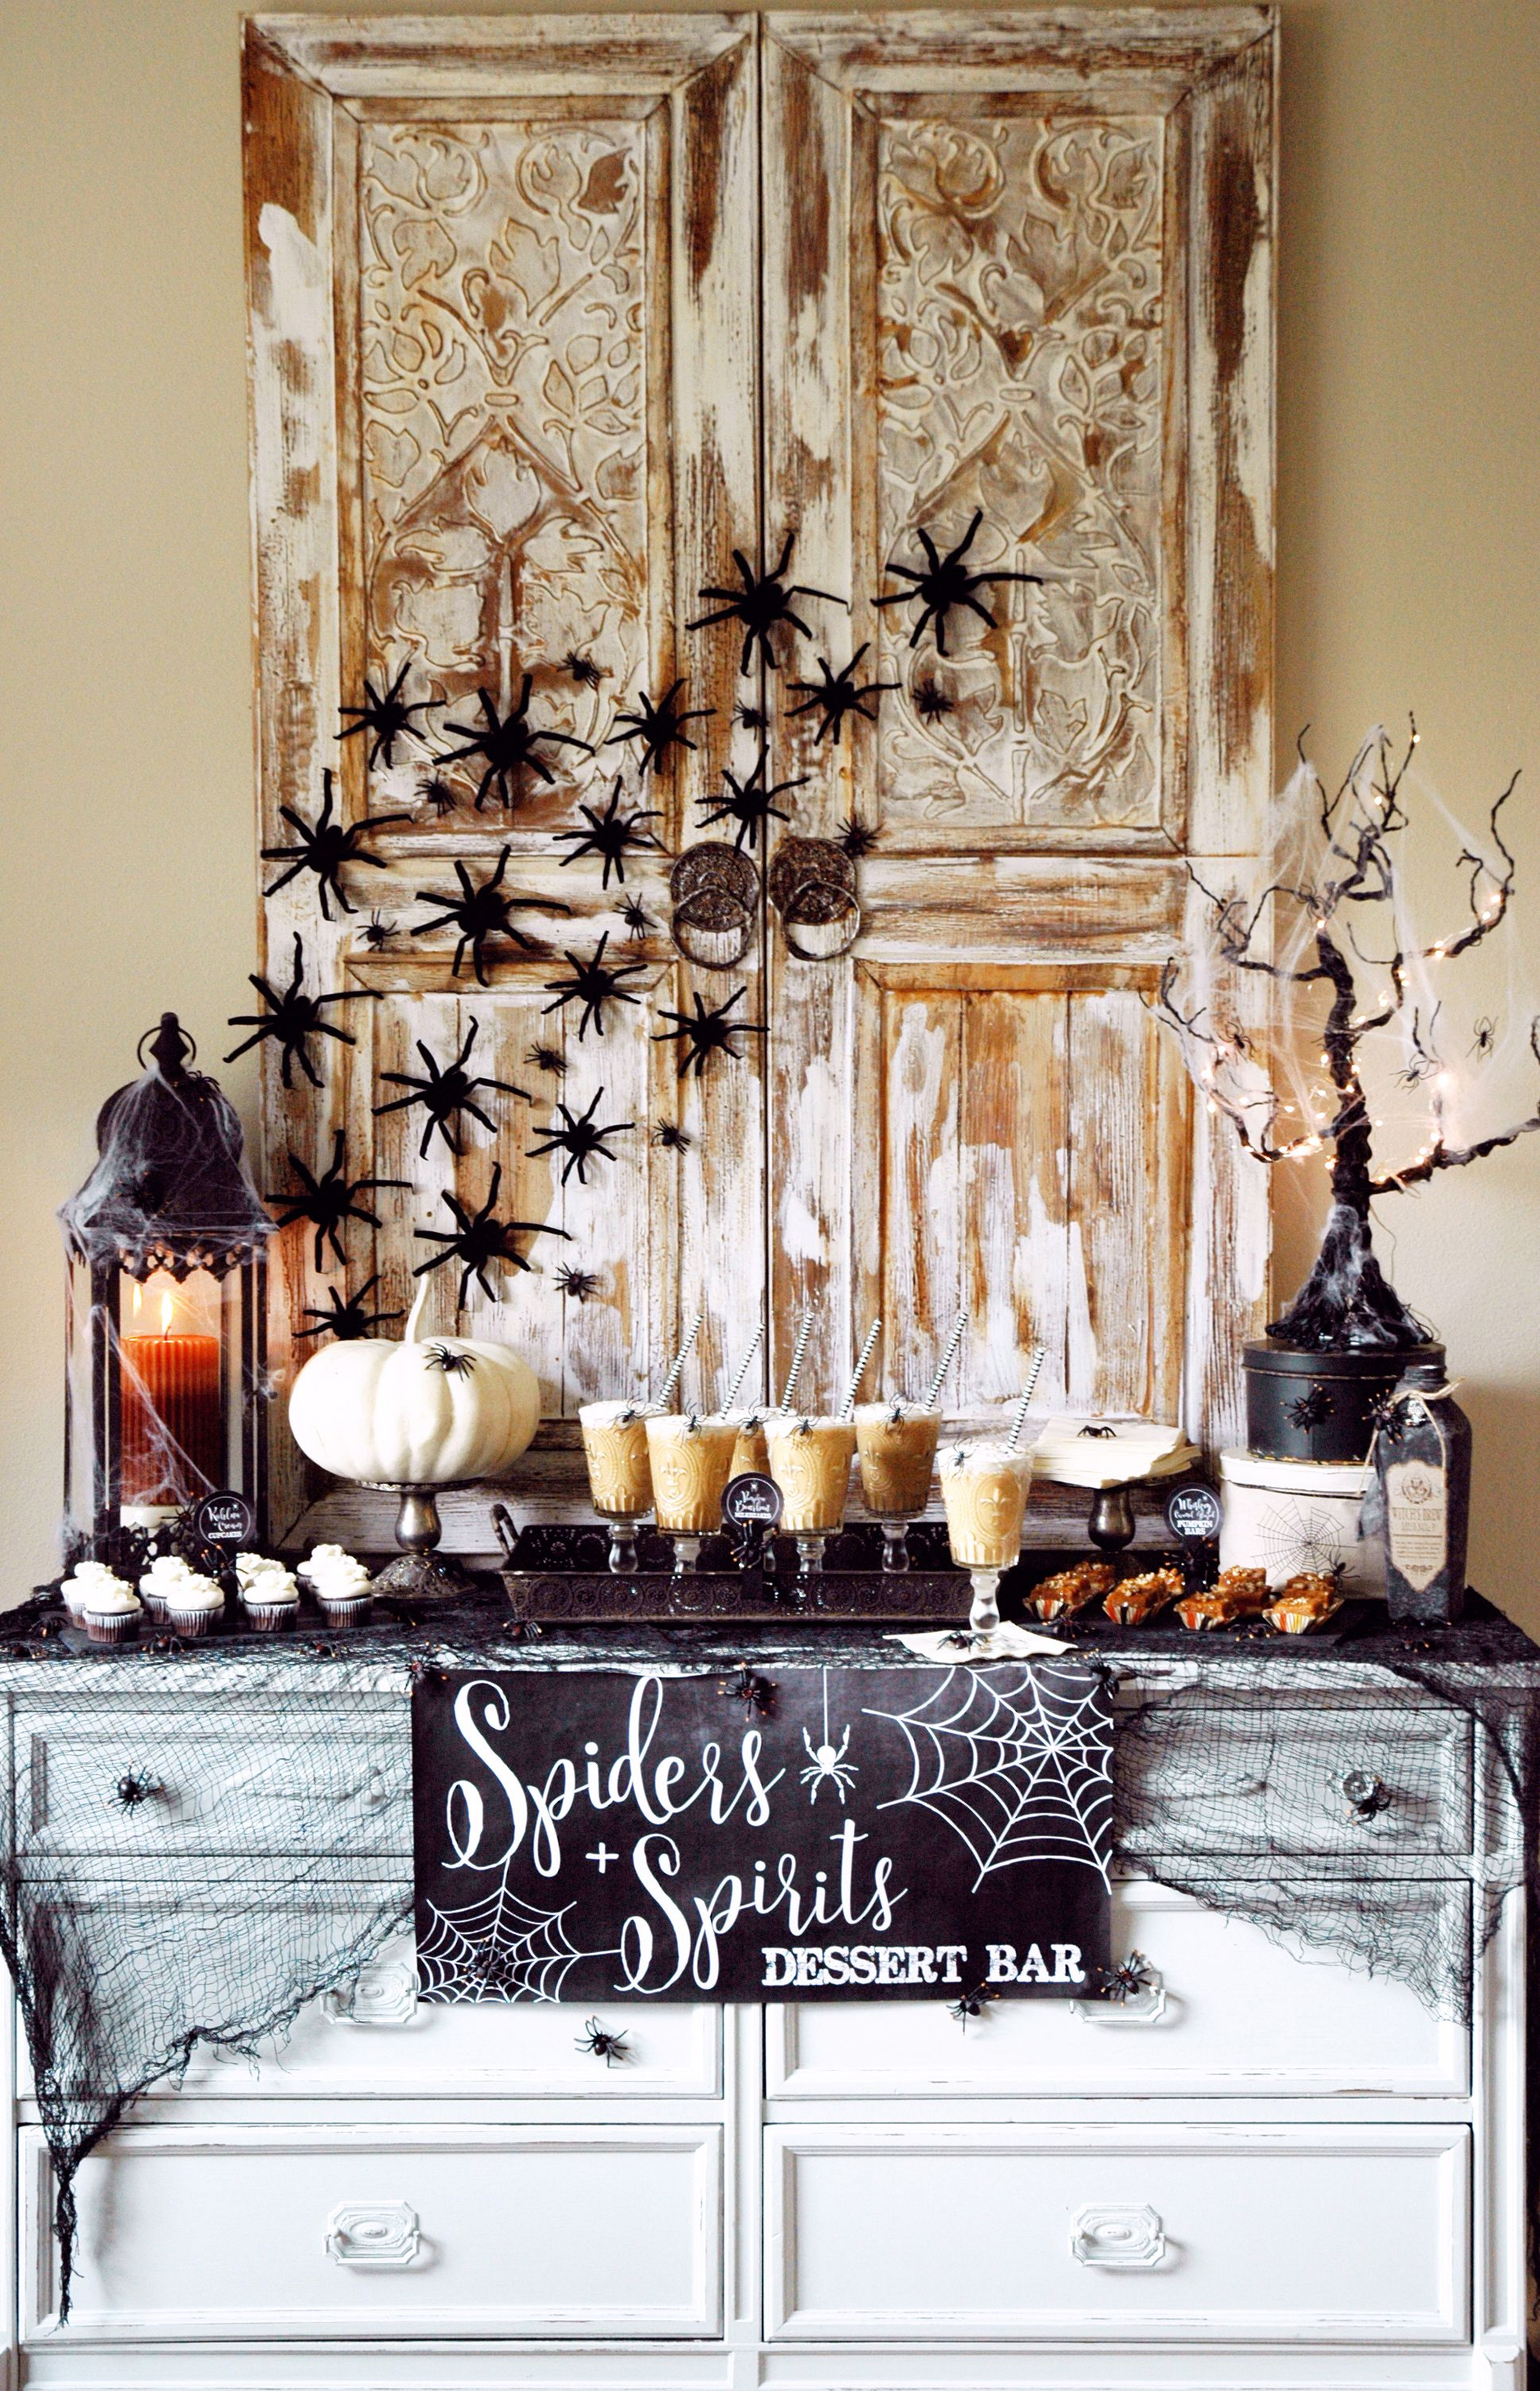 Best Halloween Table Decorations and Centerpiece Ideas